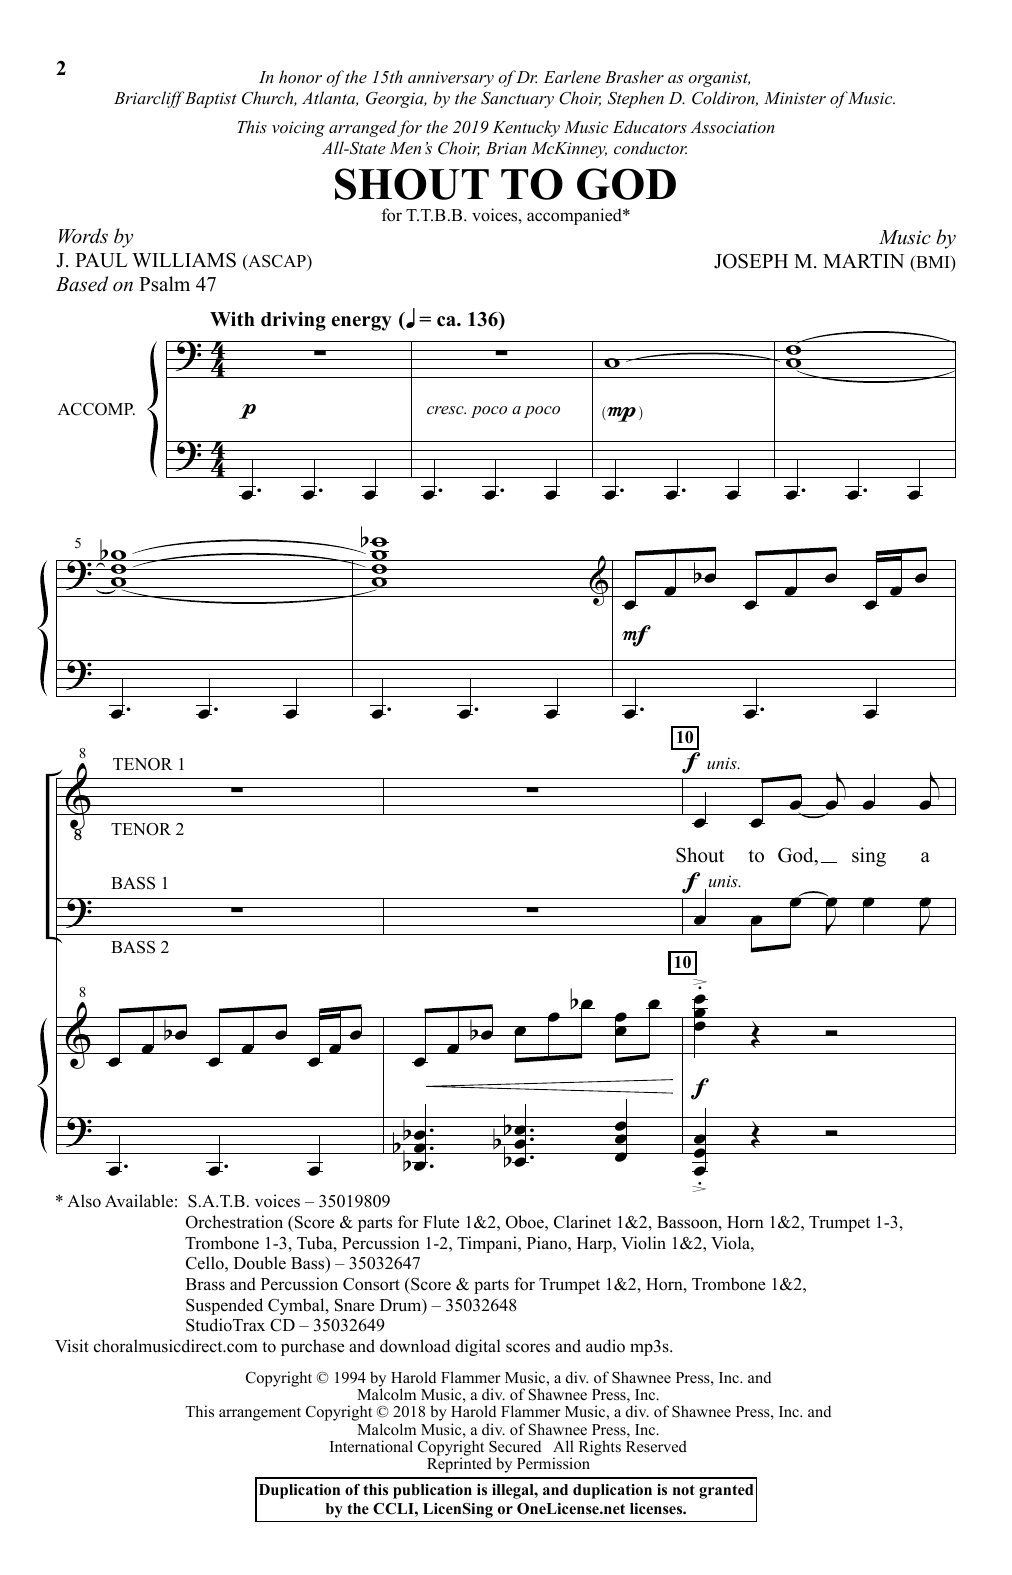 J. Paul Williams & Joseph M. Martin Shout To God sheet music notes and chords. Download Printable PDF.